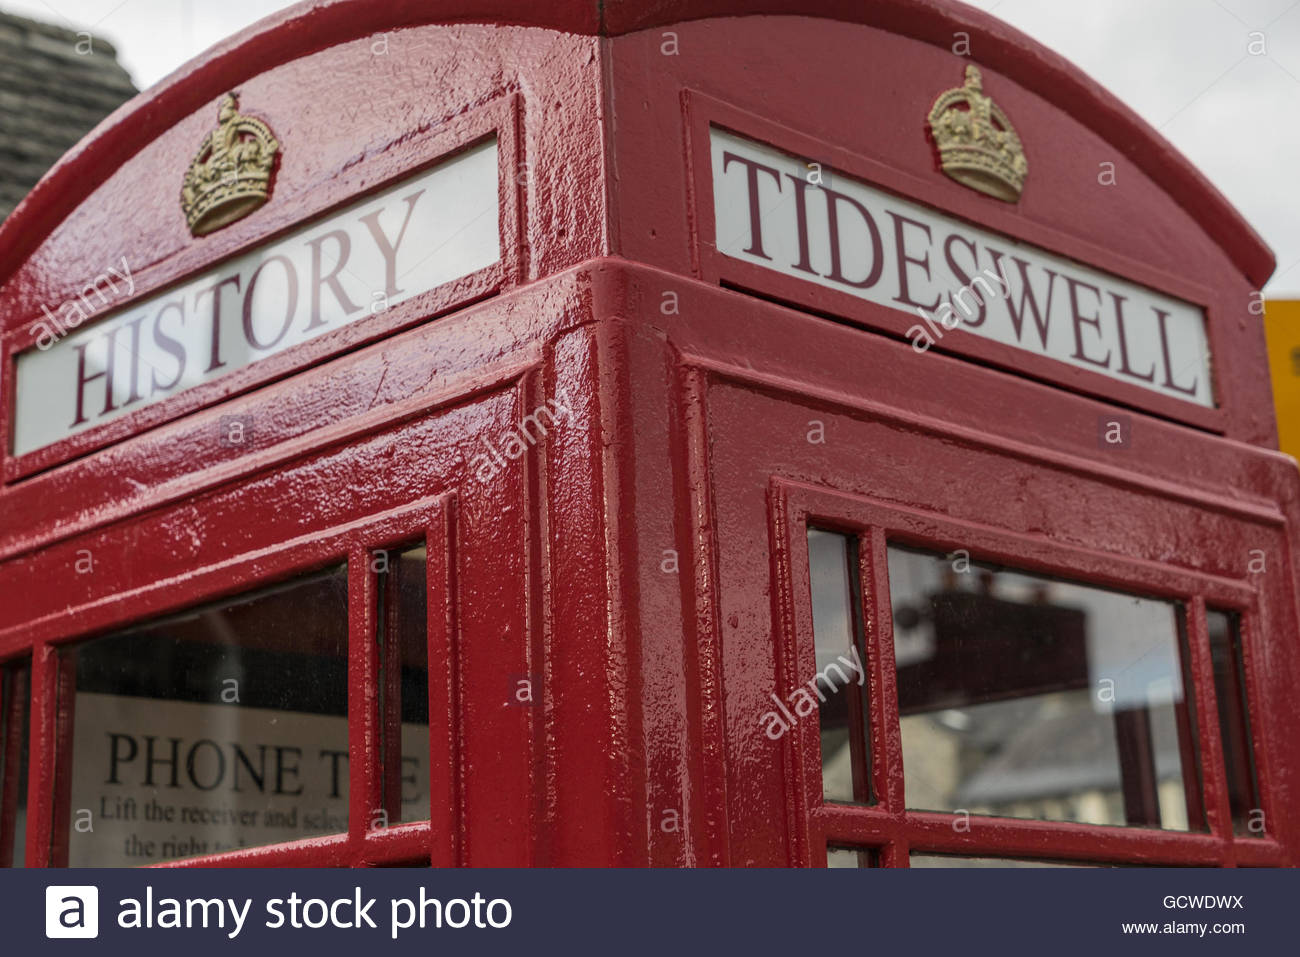 Tideswell Library Telephone Box - Stock Image